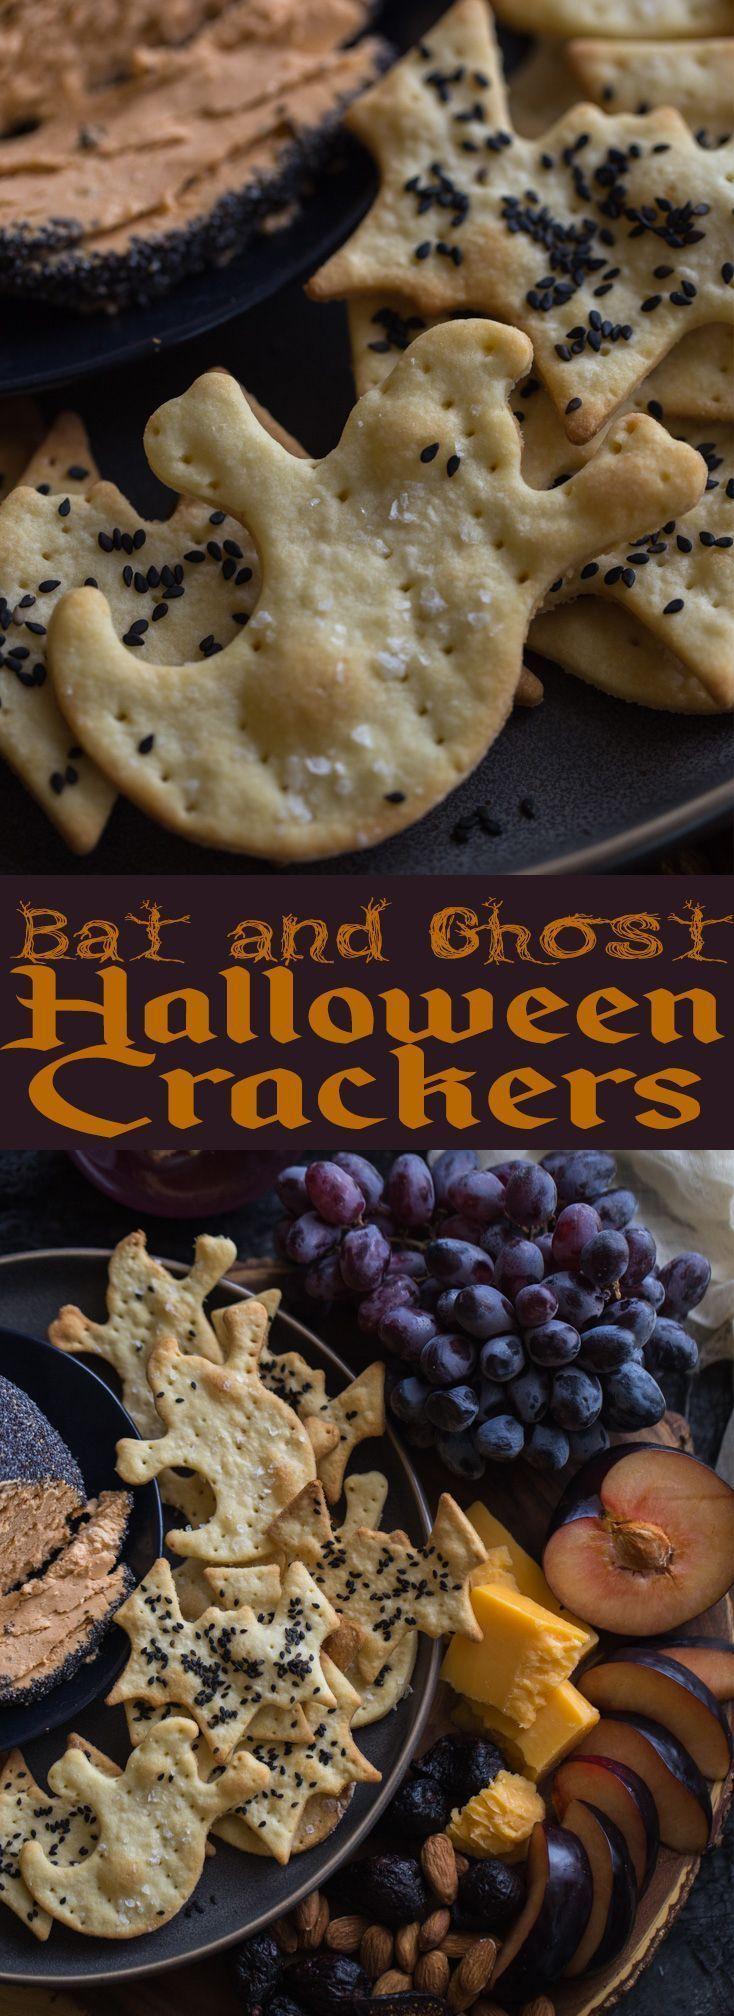 Bat and Ghost Halloween Crackers Recipe Gross